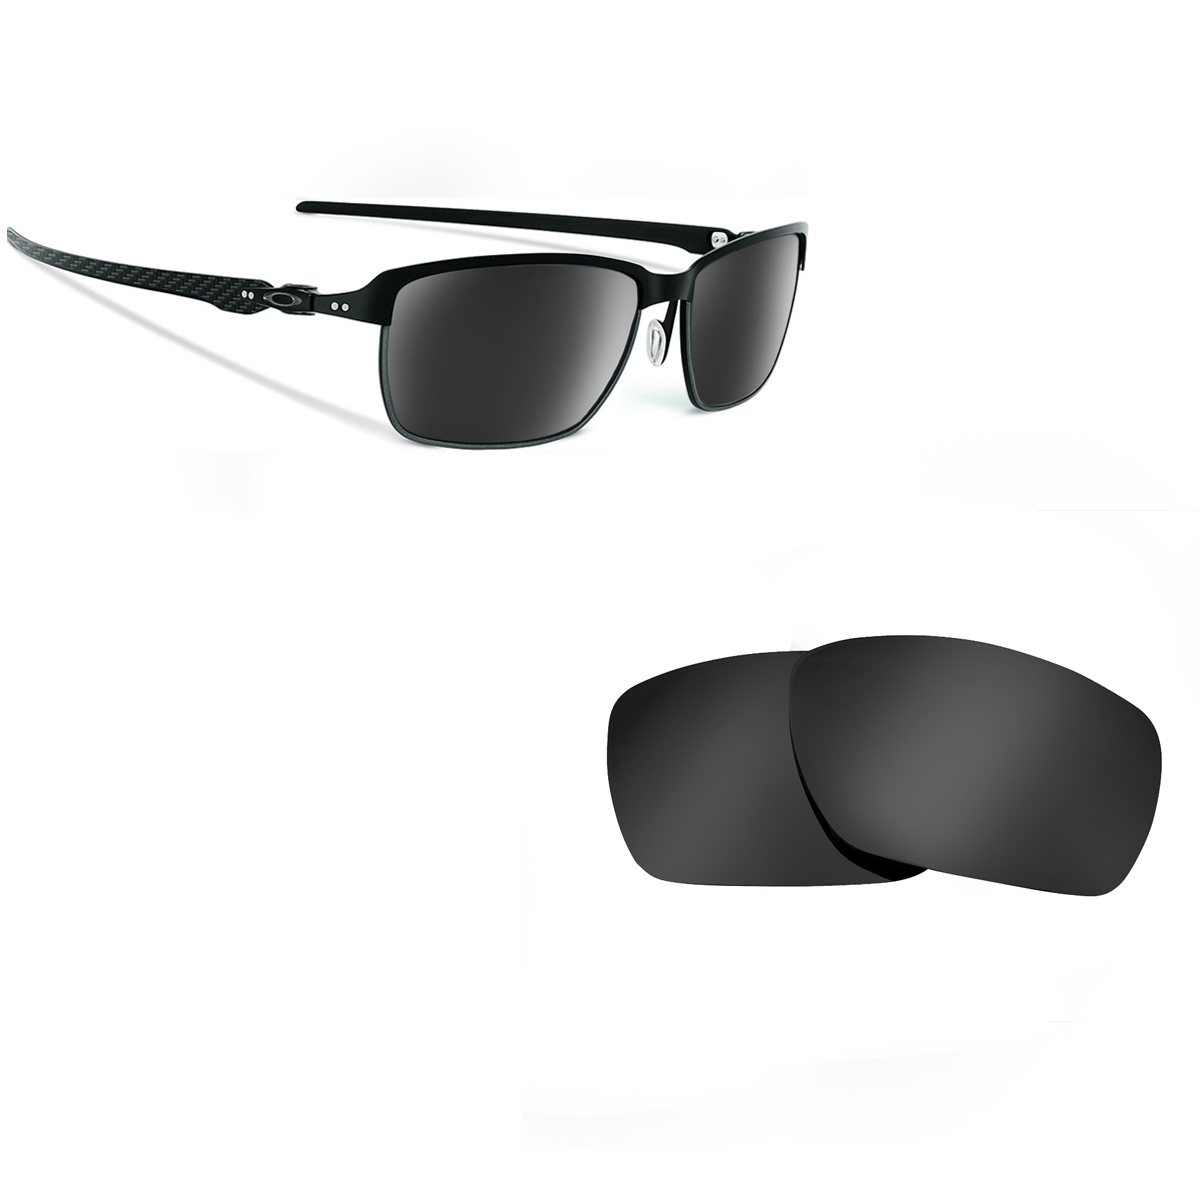 c0b0640ced Tinfoil Carbon Replacement Lenses by SEEK OPTICS to fit OAKLEY ...